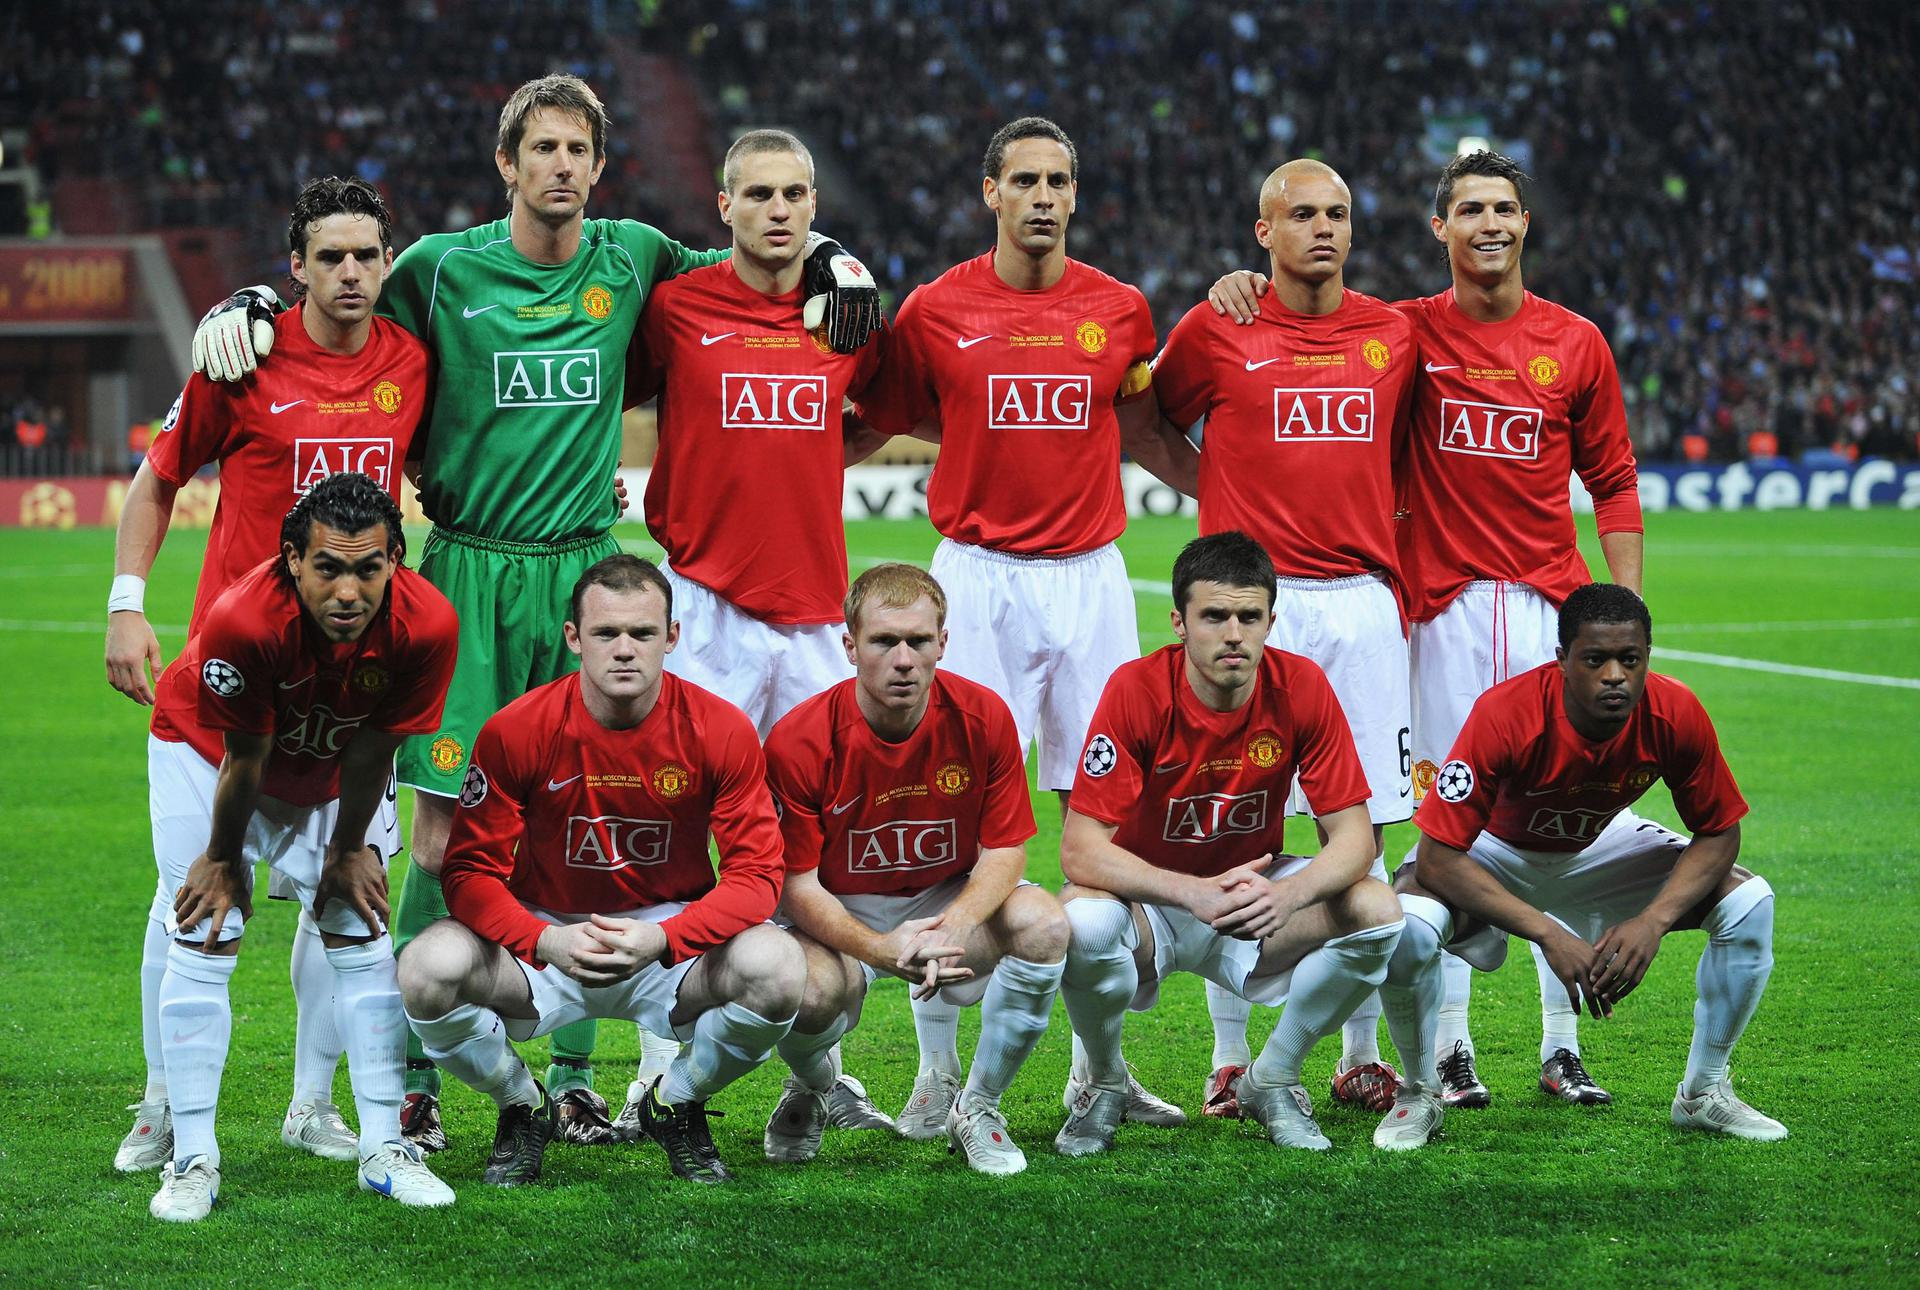 gallery champions league final 2008 manchester united https www manutd com en imagegallery detail gallery champions league final 2008